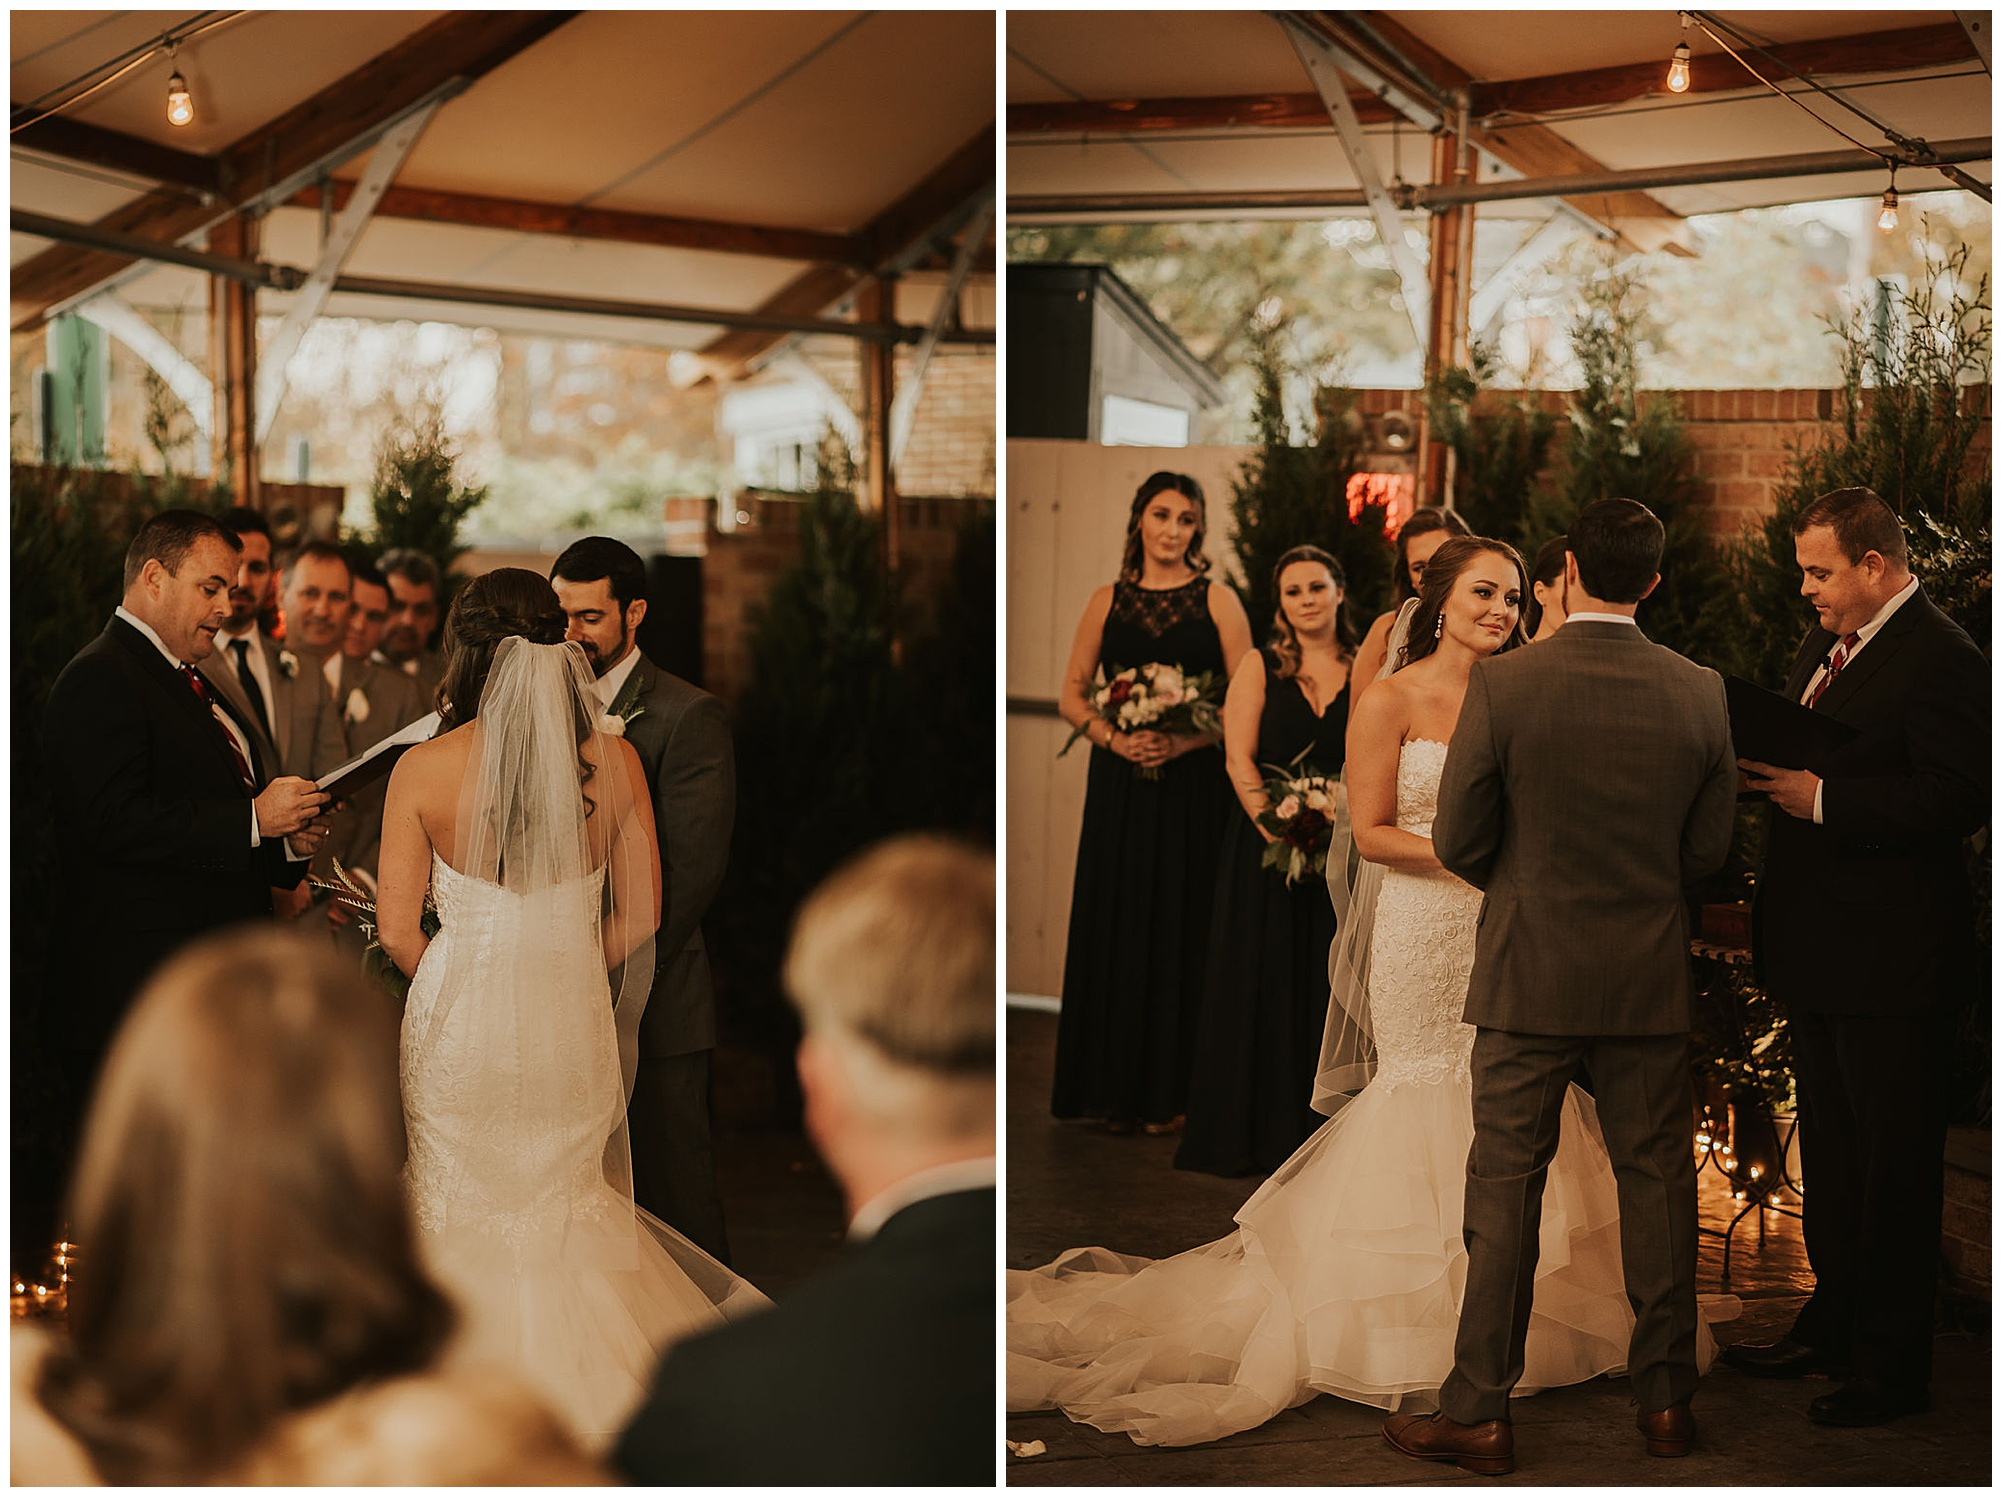 romantic, classy wedding inspiration and ideas at the tidewater inn venue in easton maryland in the autumn fall. outdoor ceremony in tent yurt style setting with fireplace. moody sultry and totally gorgeous. now featured on my eastern shore wedding blog.